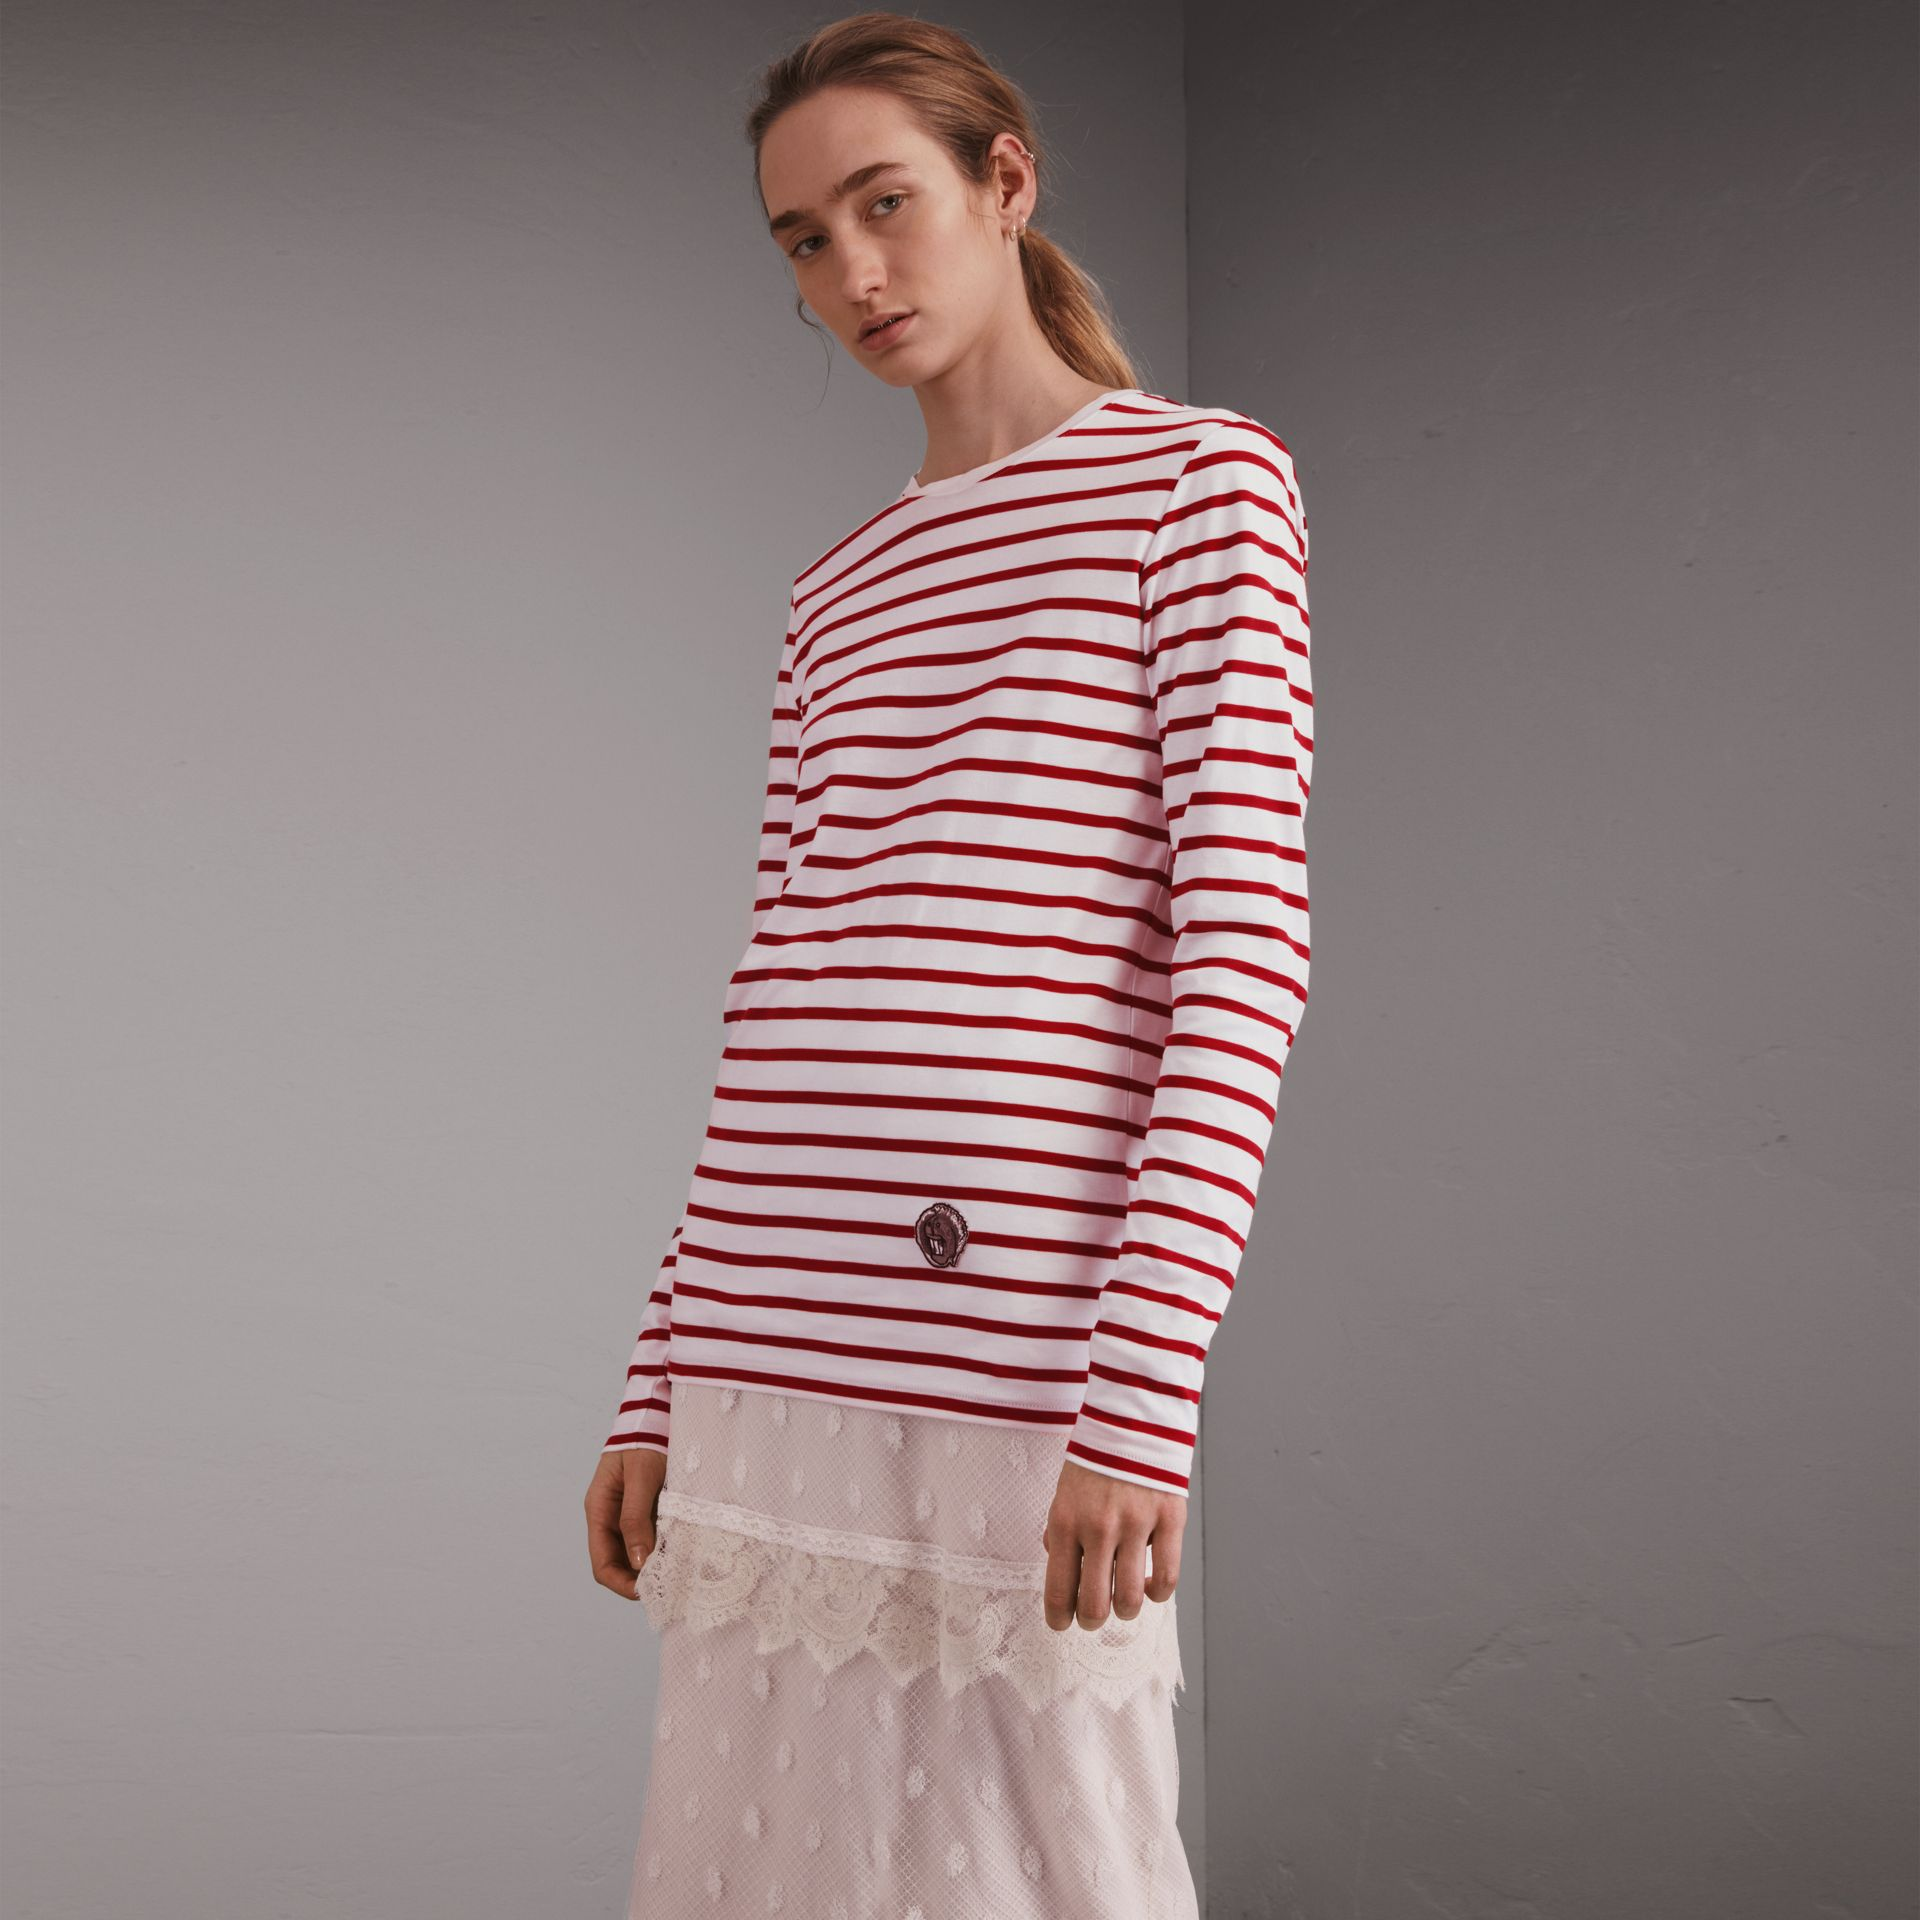 Unisex Pallas Heads Motif Breton Stripe Cotton Top - Women | Burberry - gallery image 1